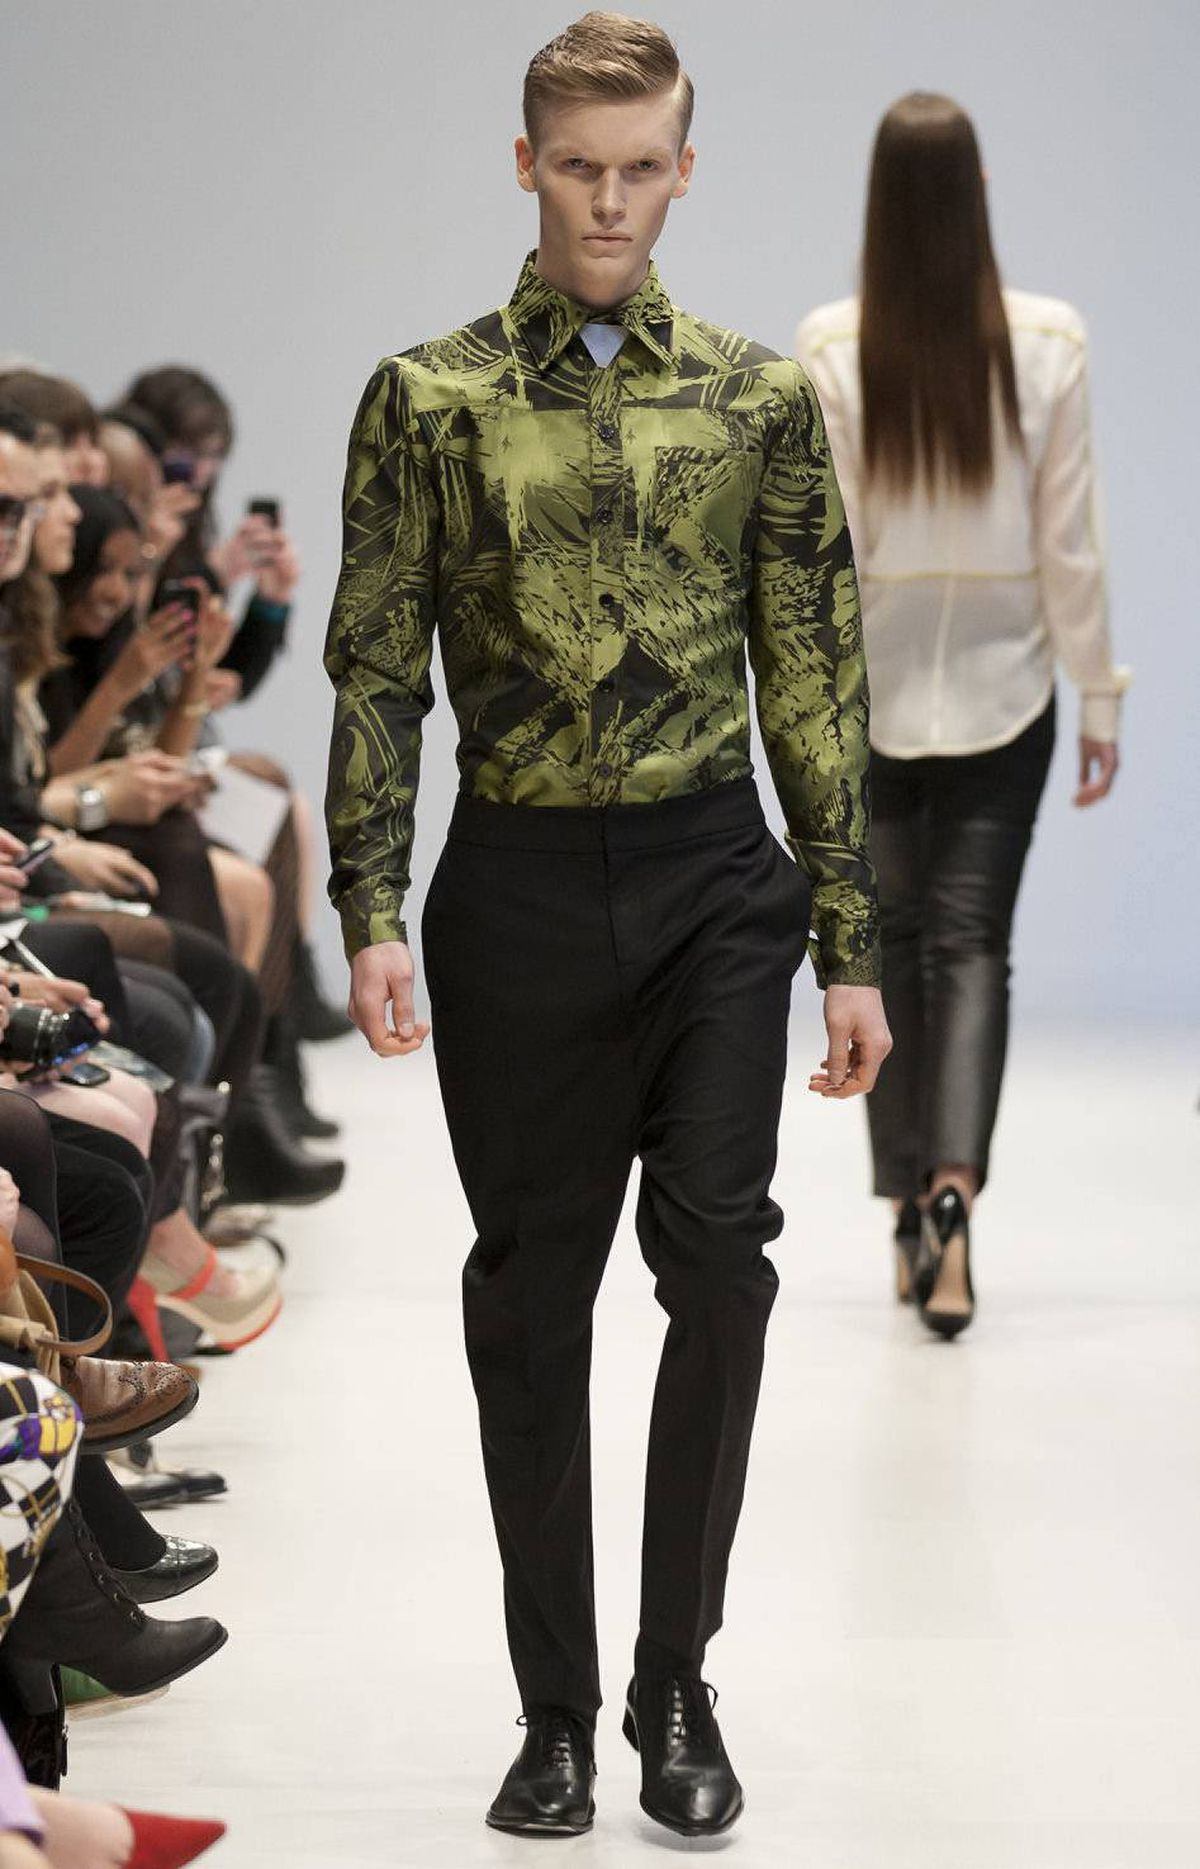 There was something for guys, too. A leafy printed dress shirt and drop-crotch trousers were particularly notable and worked. More directional sheer tops with vests for men, though, were a bit forward. But take the pieces apart from the styling, however, and the men's separates stood out on their own.